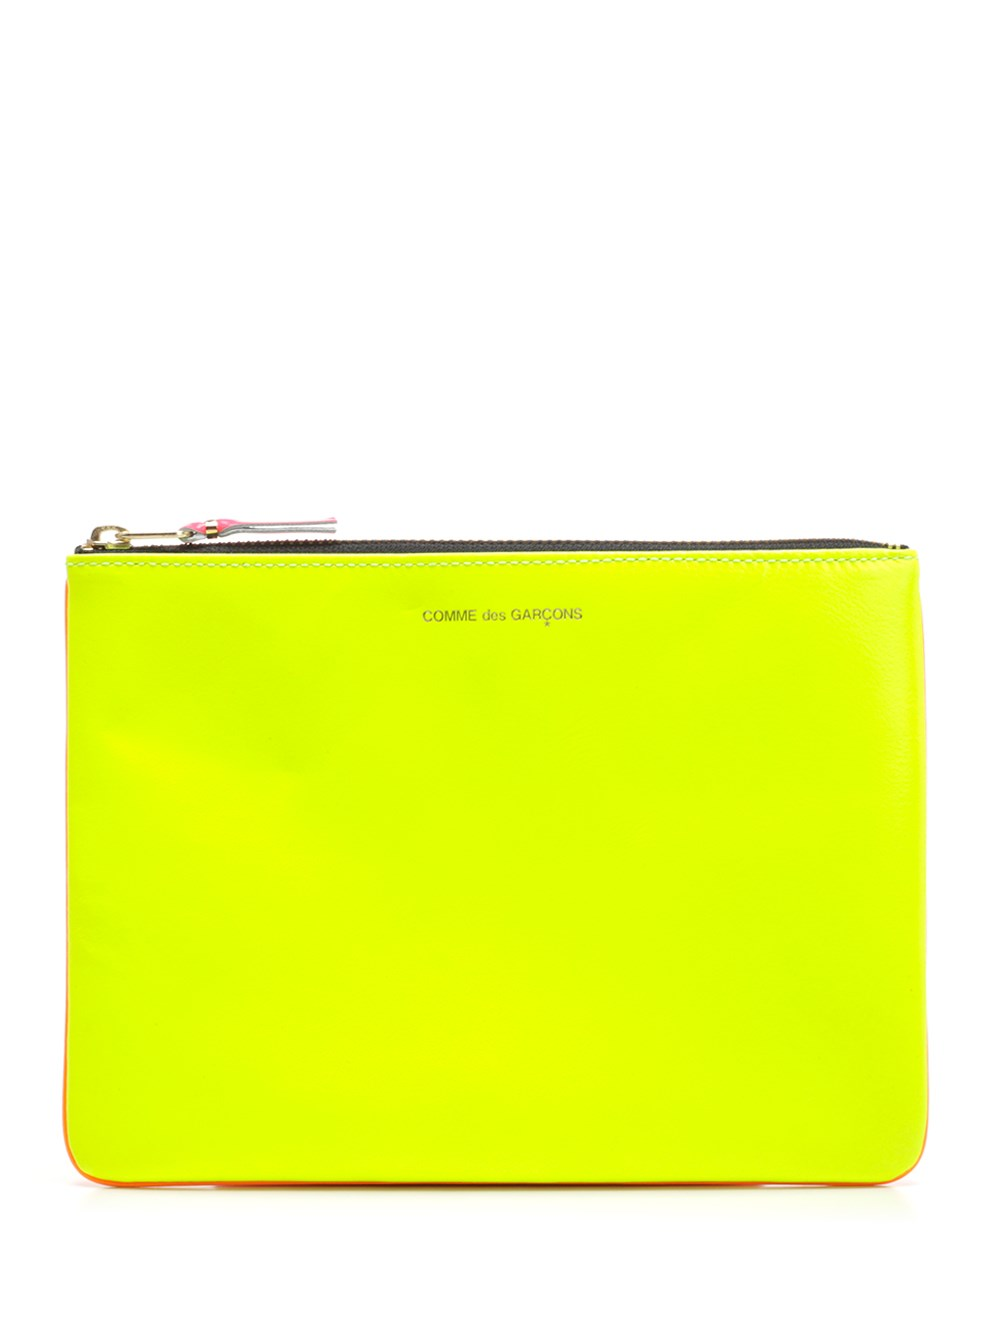 COMME DES GARCONS WALLET Yellow And Orange Bicolor Face Pouch